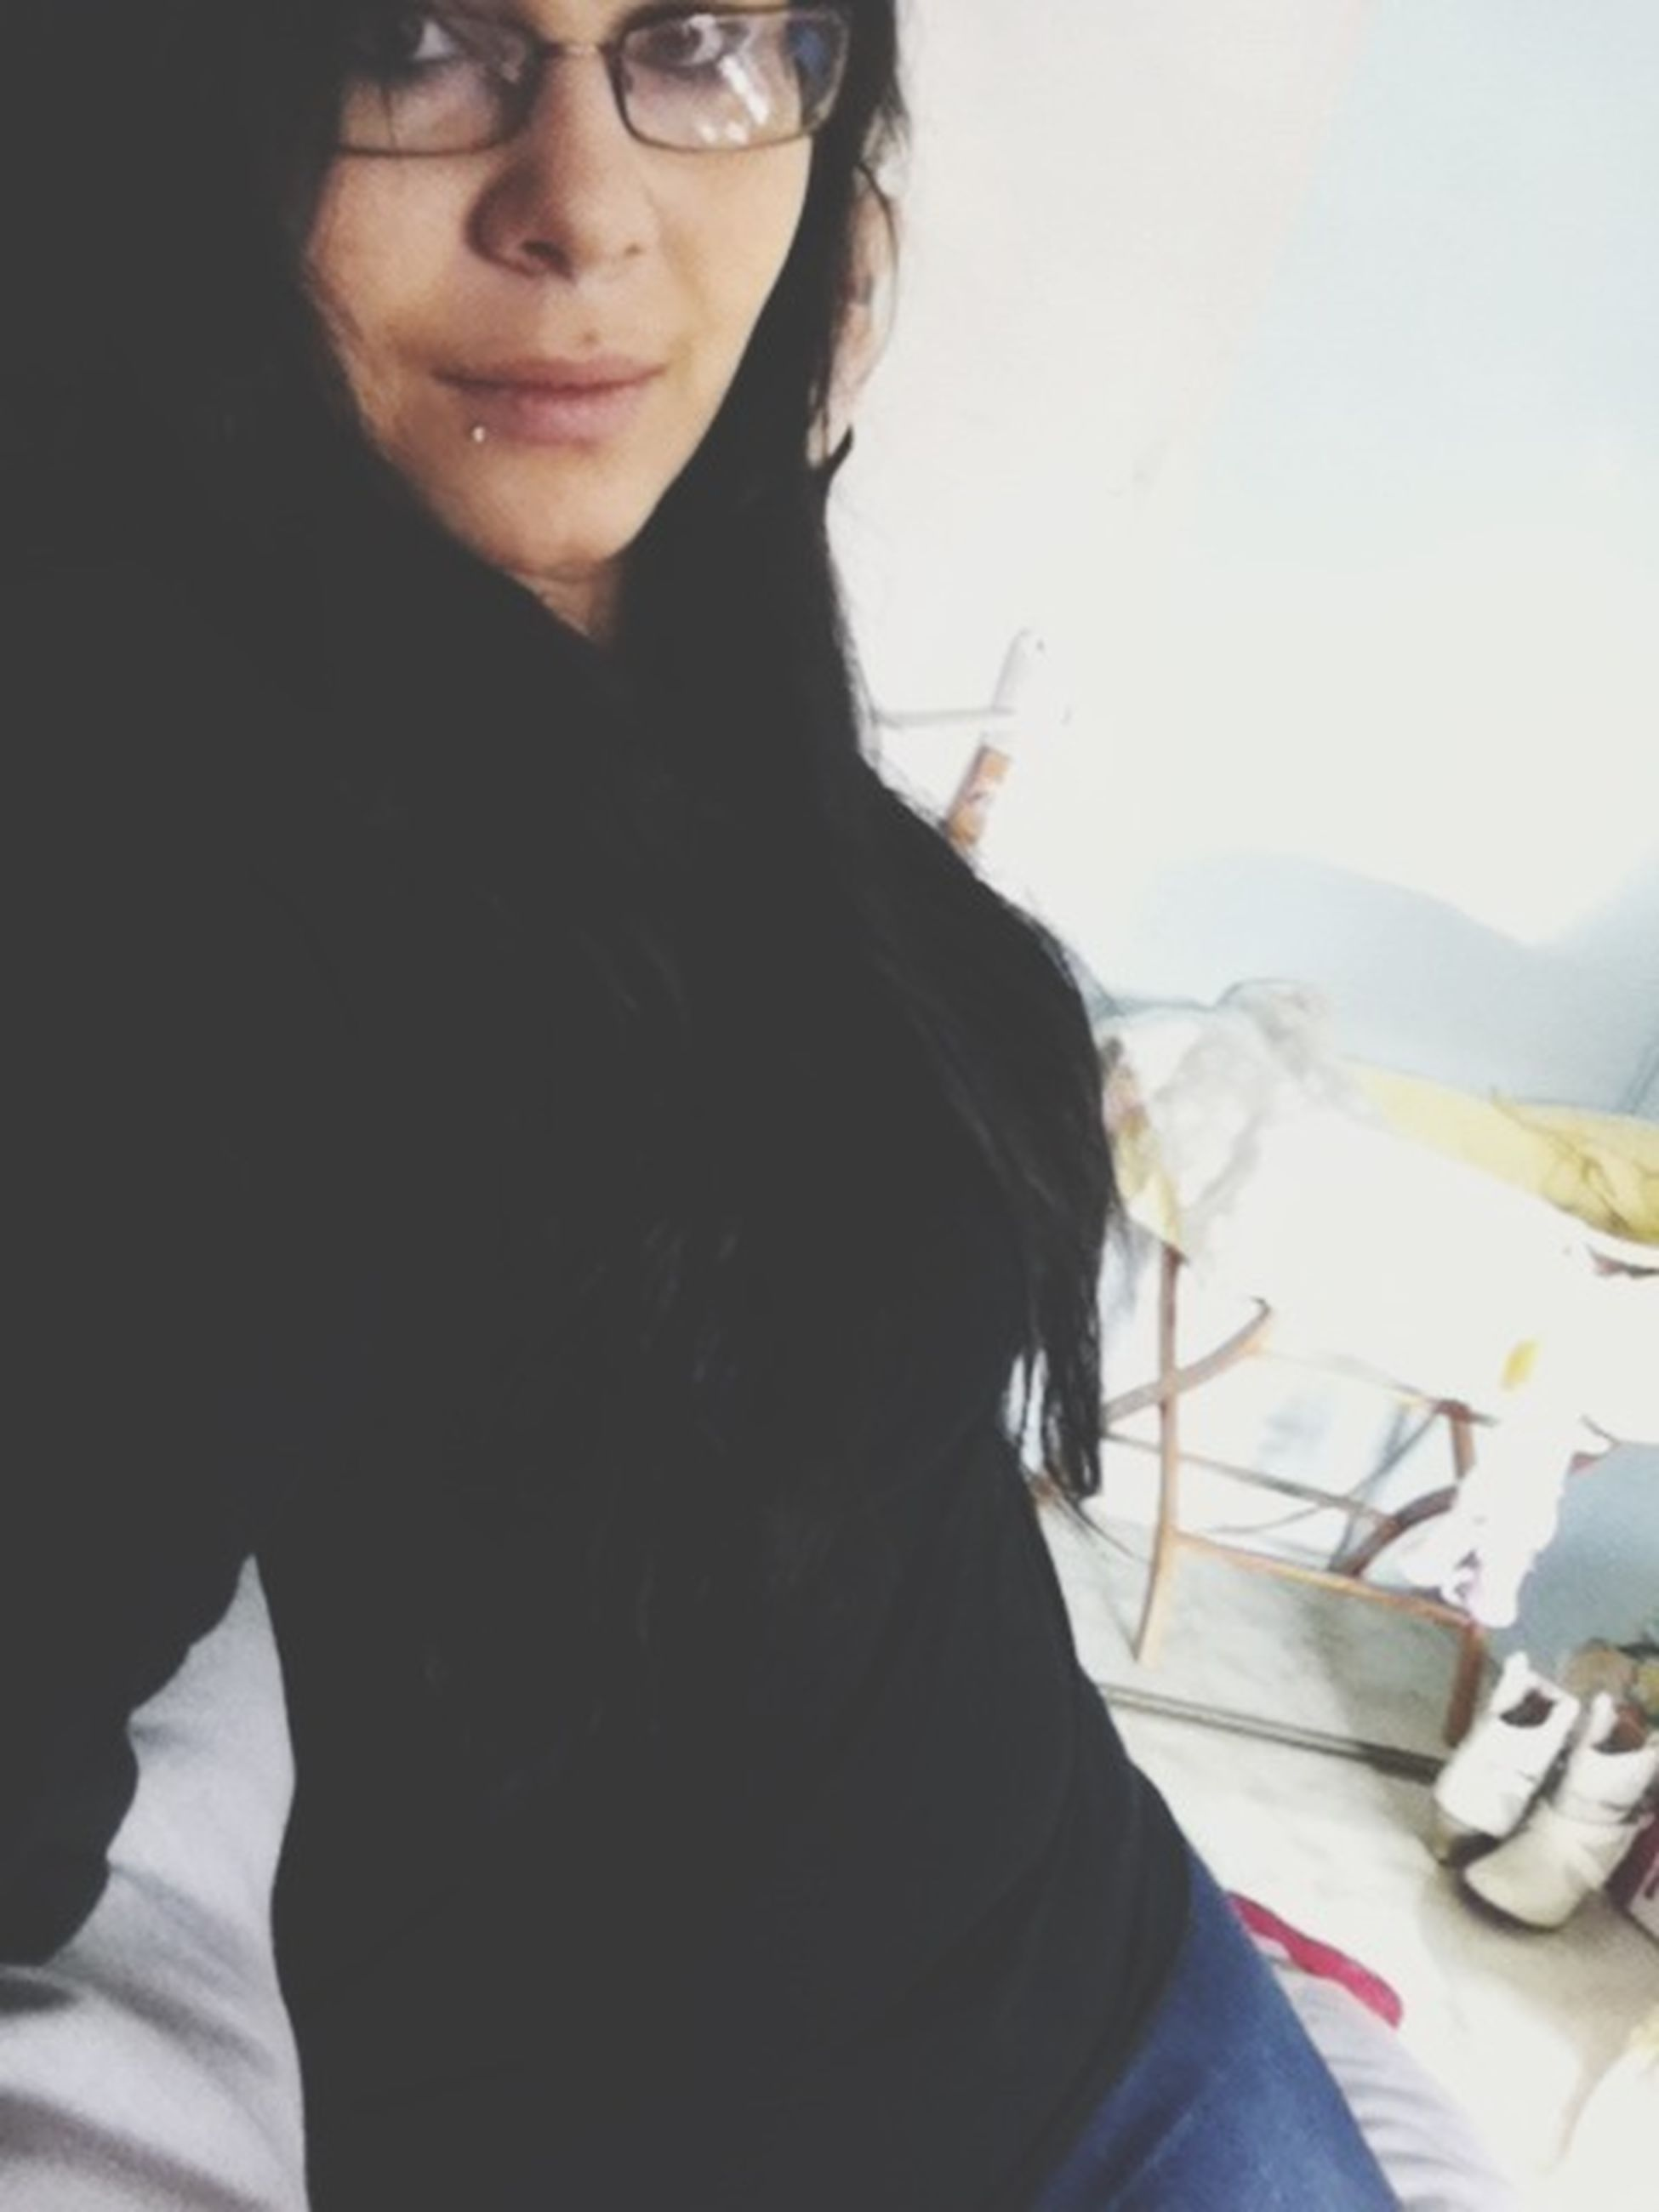 young adult, young women, lifestyles, person, headshot, leisure activity, long hair, portrait, front view, looking at camera, casual clothing, close-up, head and shoulders, black hair, focus on foreground, indoors